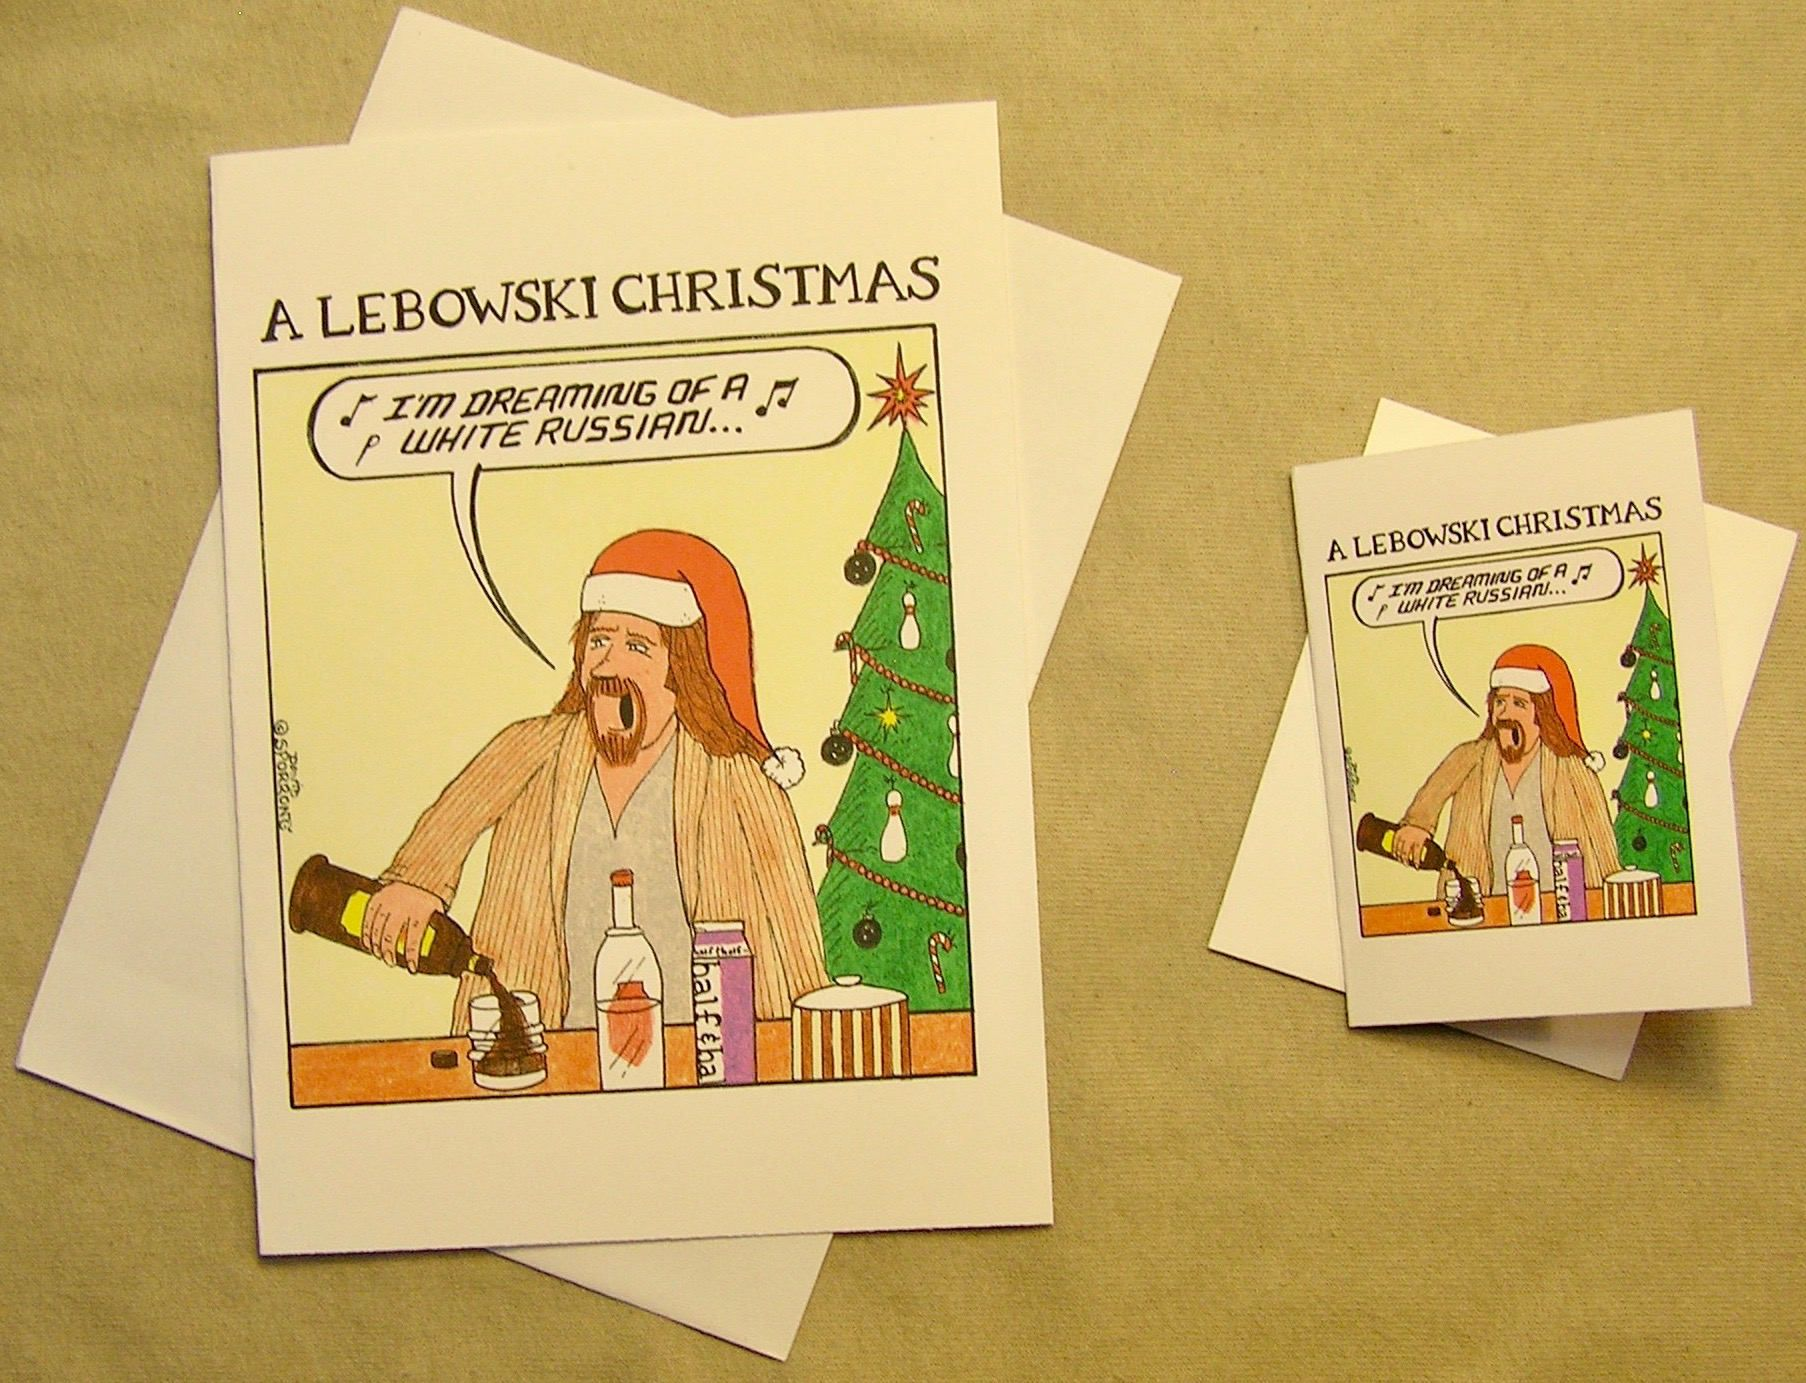 The Big Lebowski Holiday Card Im Dreaming Of A White Russian